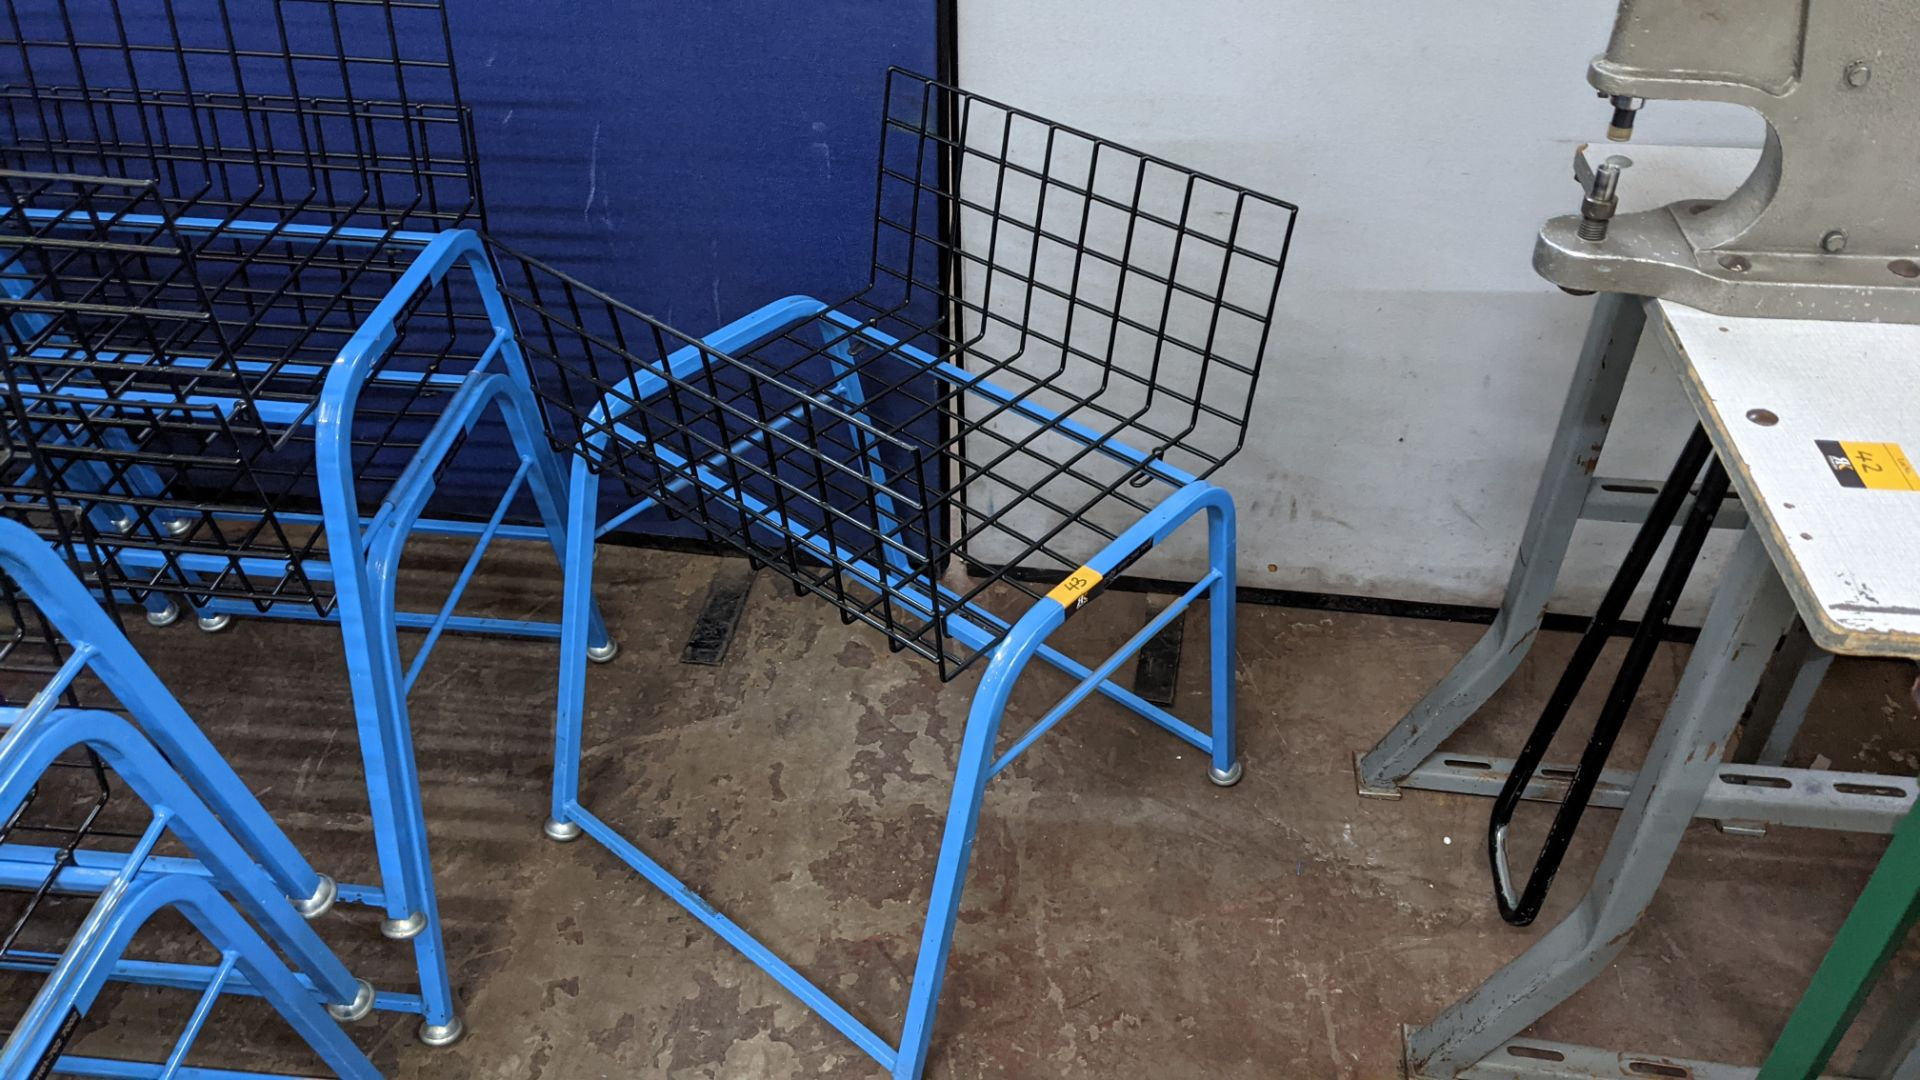 7 off matching blue stacking Steely mobile machinists baskets - Image 5 of 5